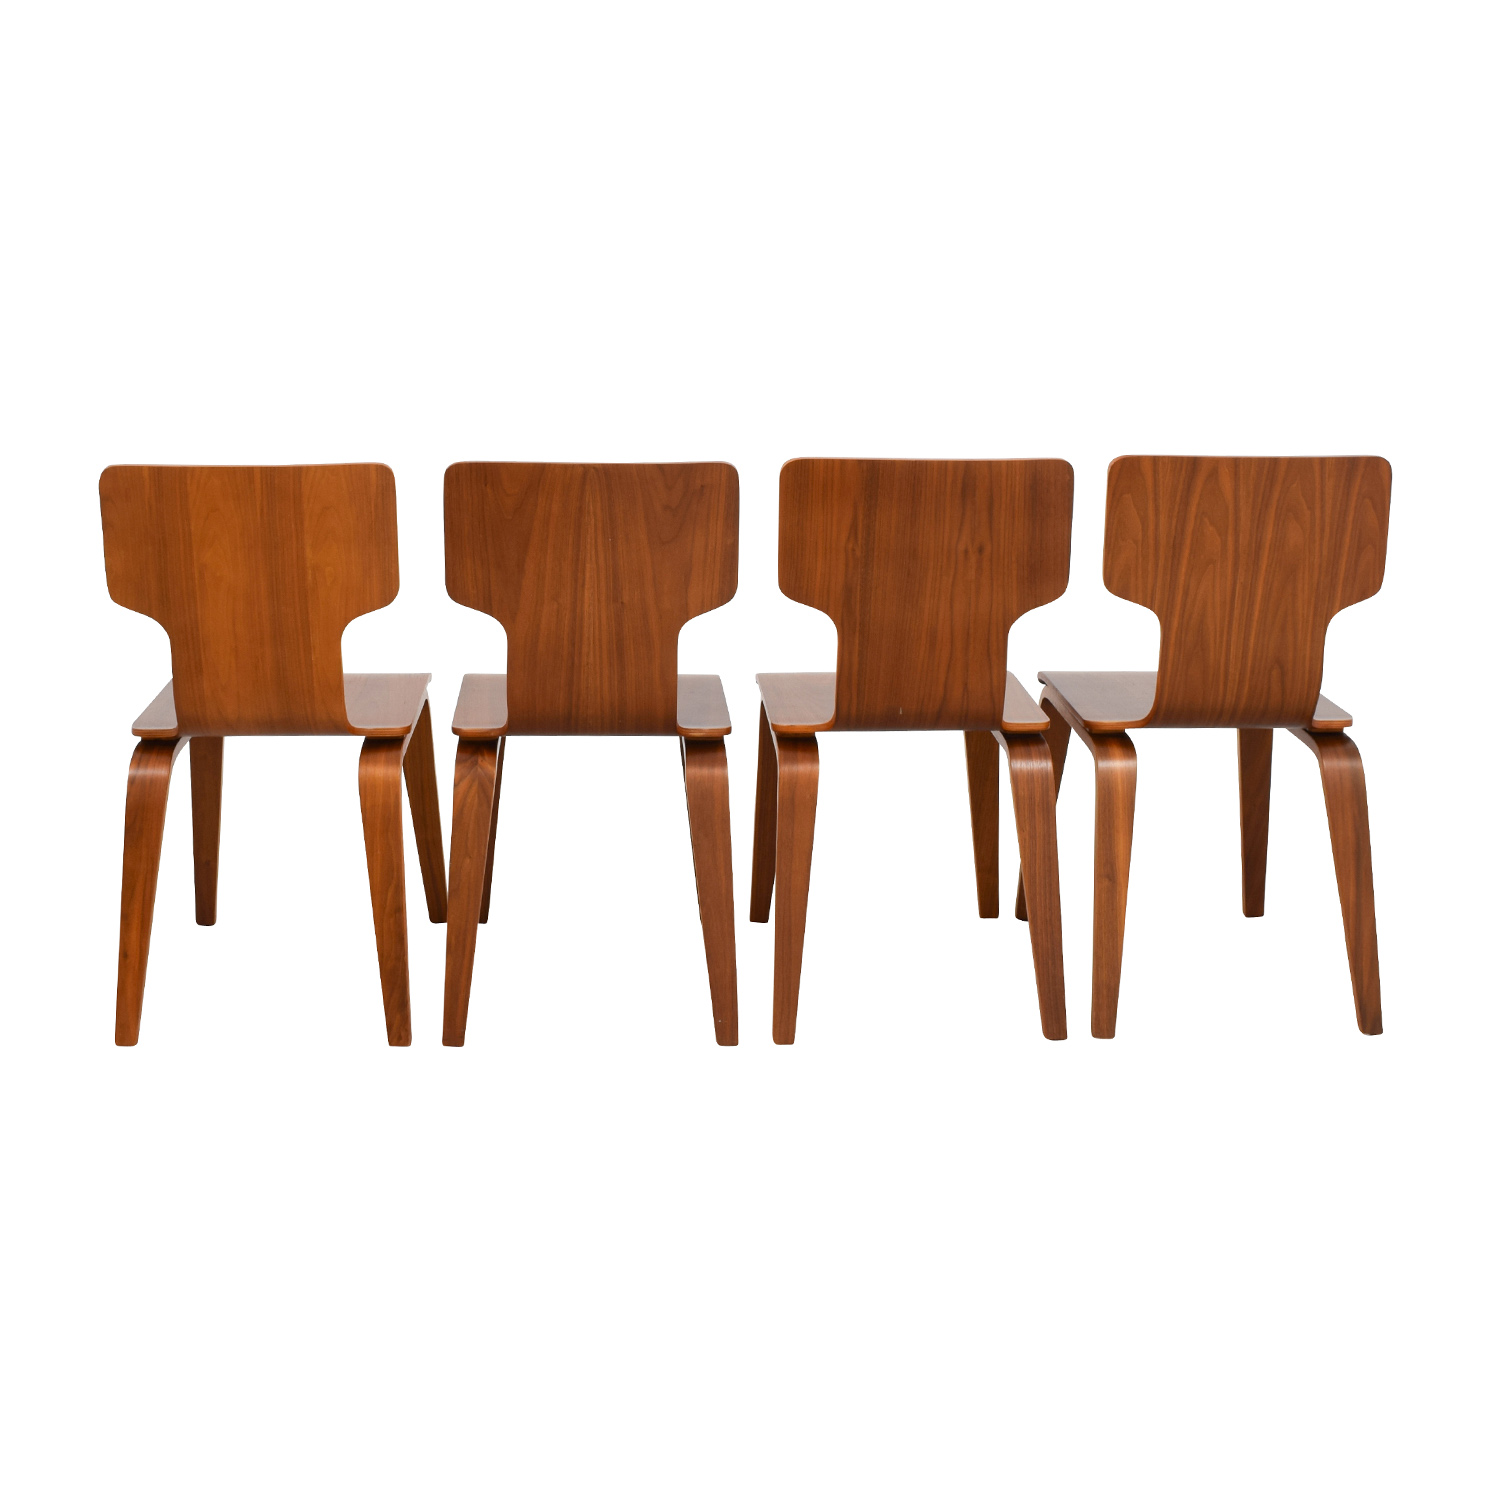 OFF West Elm West Elm Dining Table Chairs Chairs - West elm table and chairs